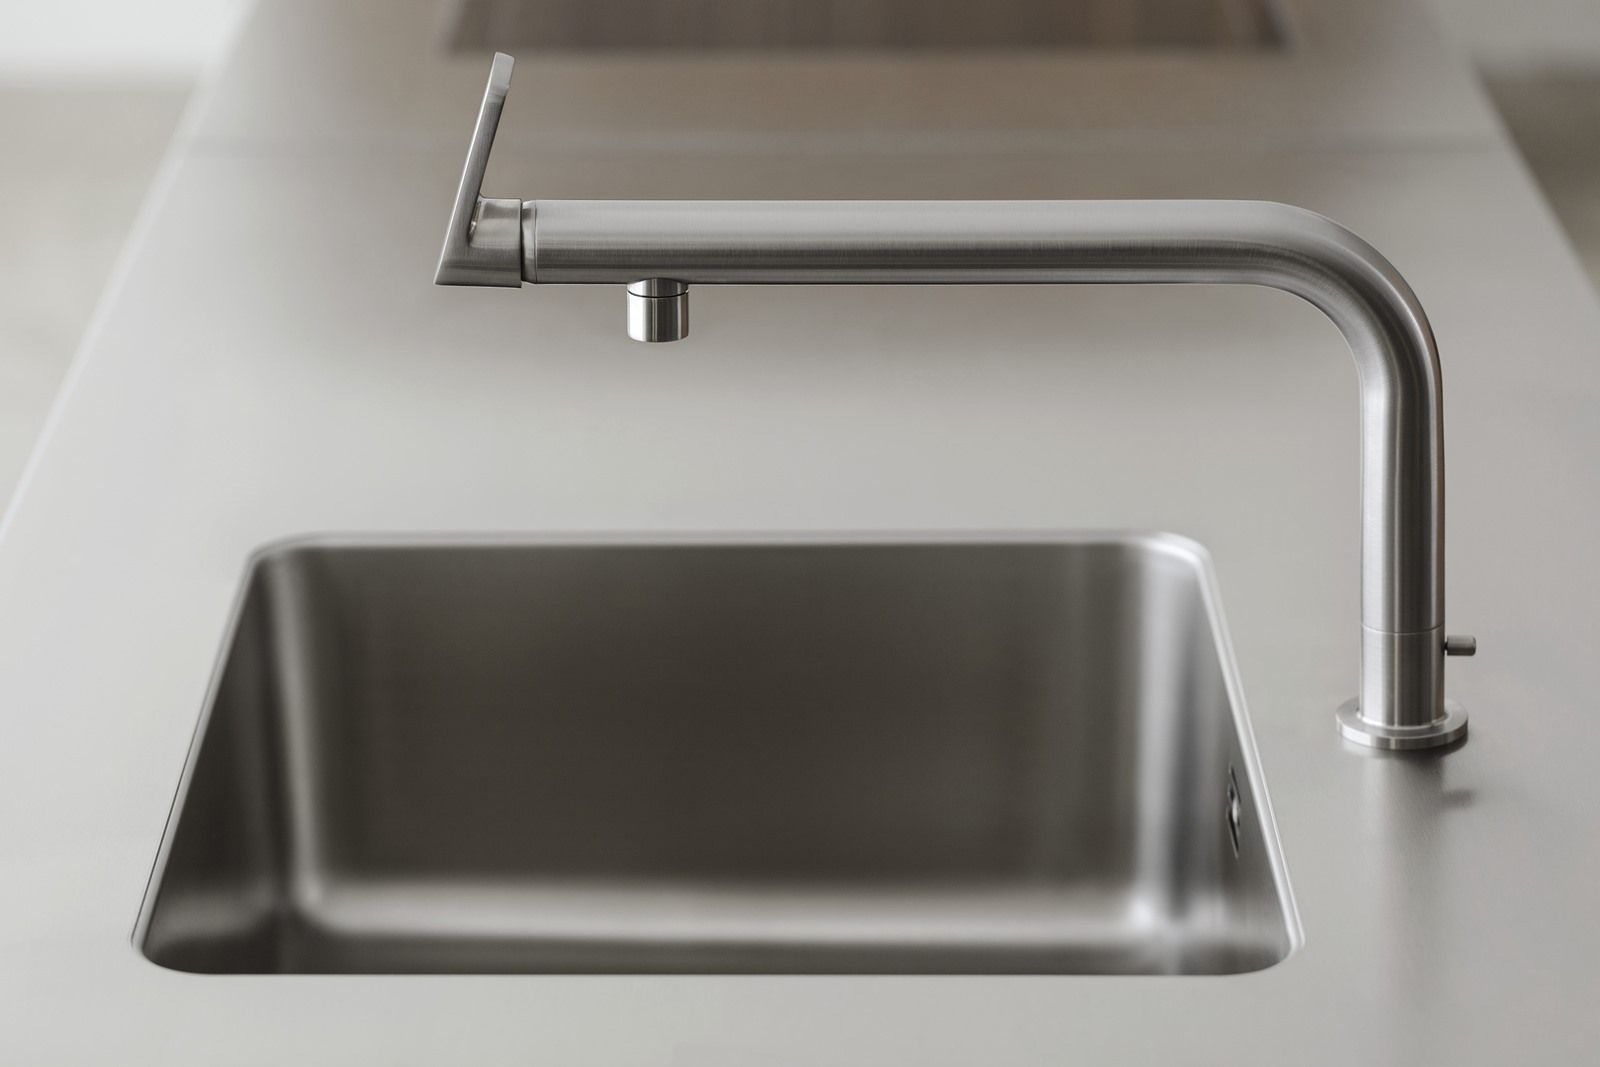 Bulthaup Küchenarmatur The Water Point Is Seamlessly Integrated Into A Stainless Steel Or